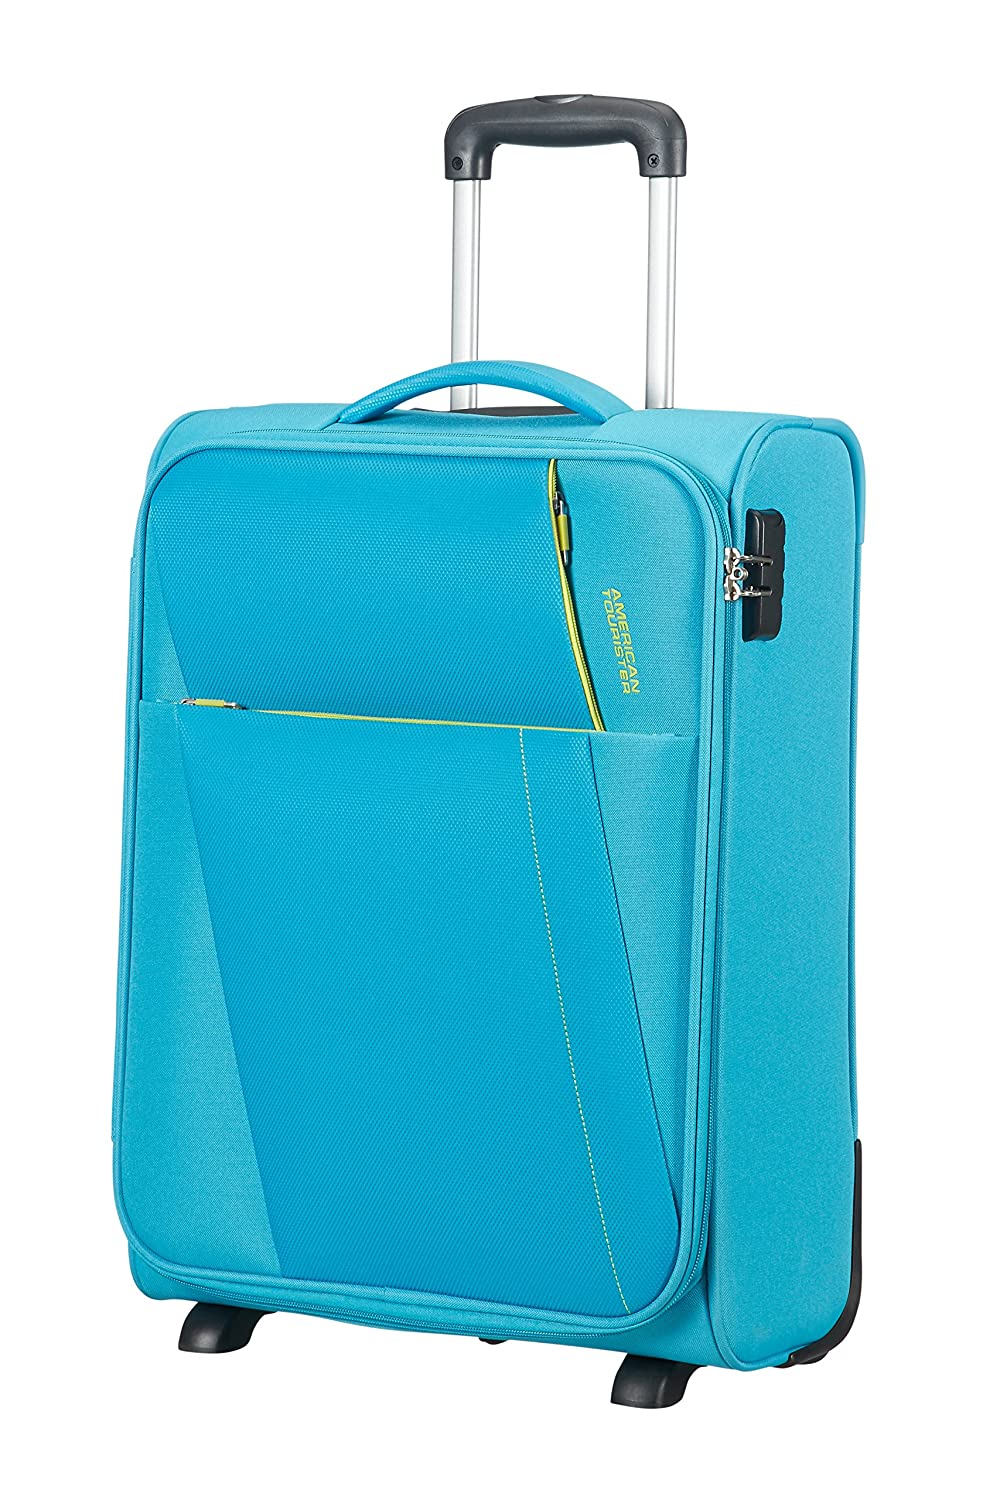 AMERICAN TOURISTER Joyride - Upright 55/20 Bagage Cabine, 55 cm, 40.5 liters, Bleu (Hawaii Blue) 89151/6323